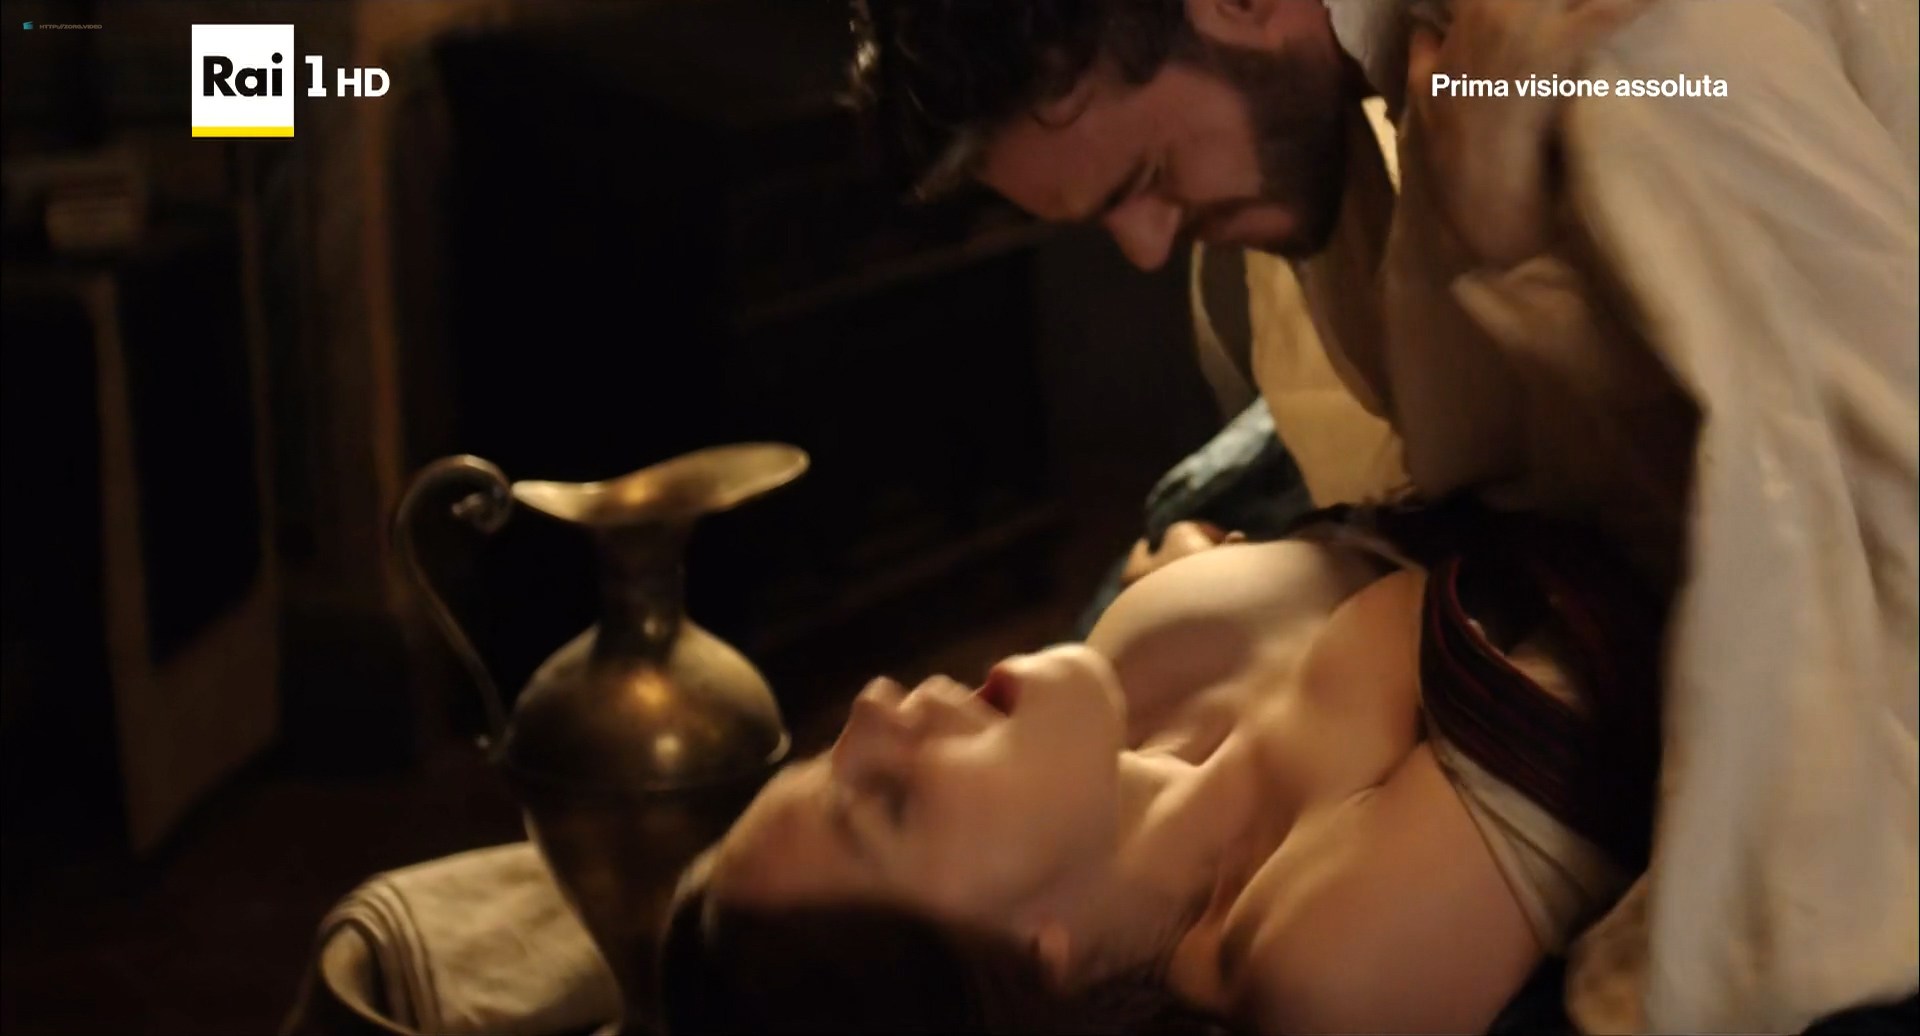 Anabel Chong Videos Porno annabel scholey nude sex and valentina belle nude too medici